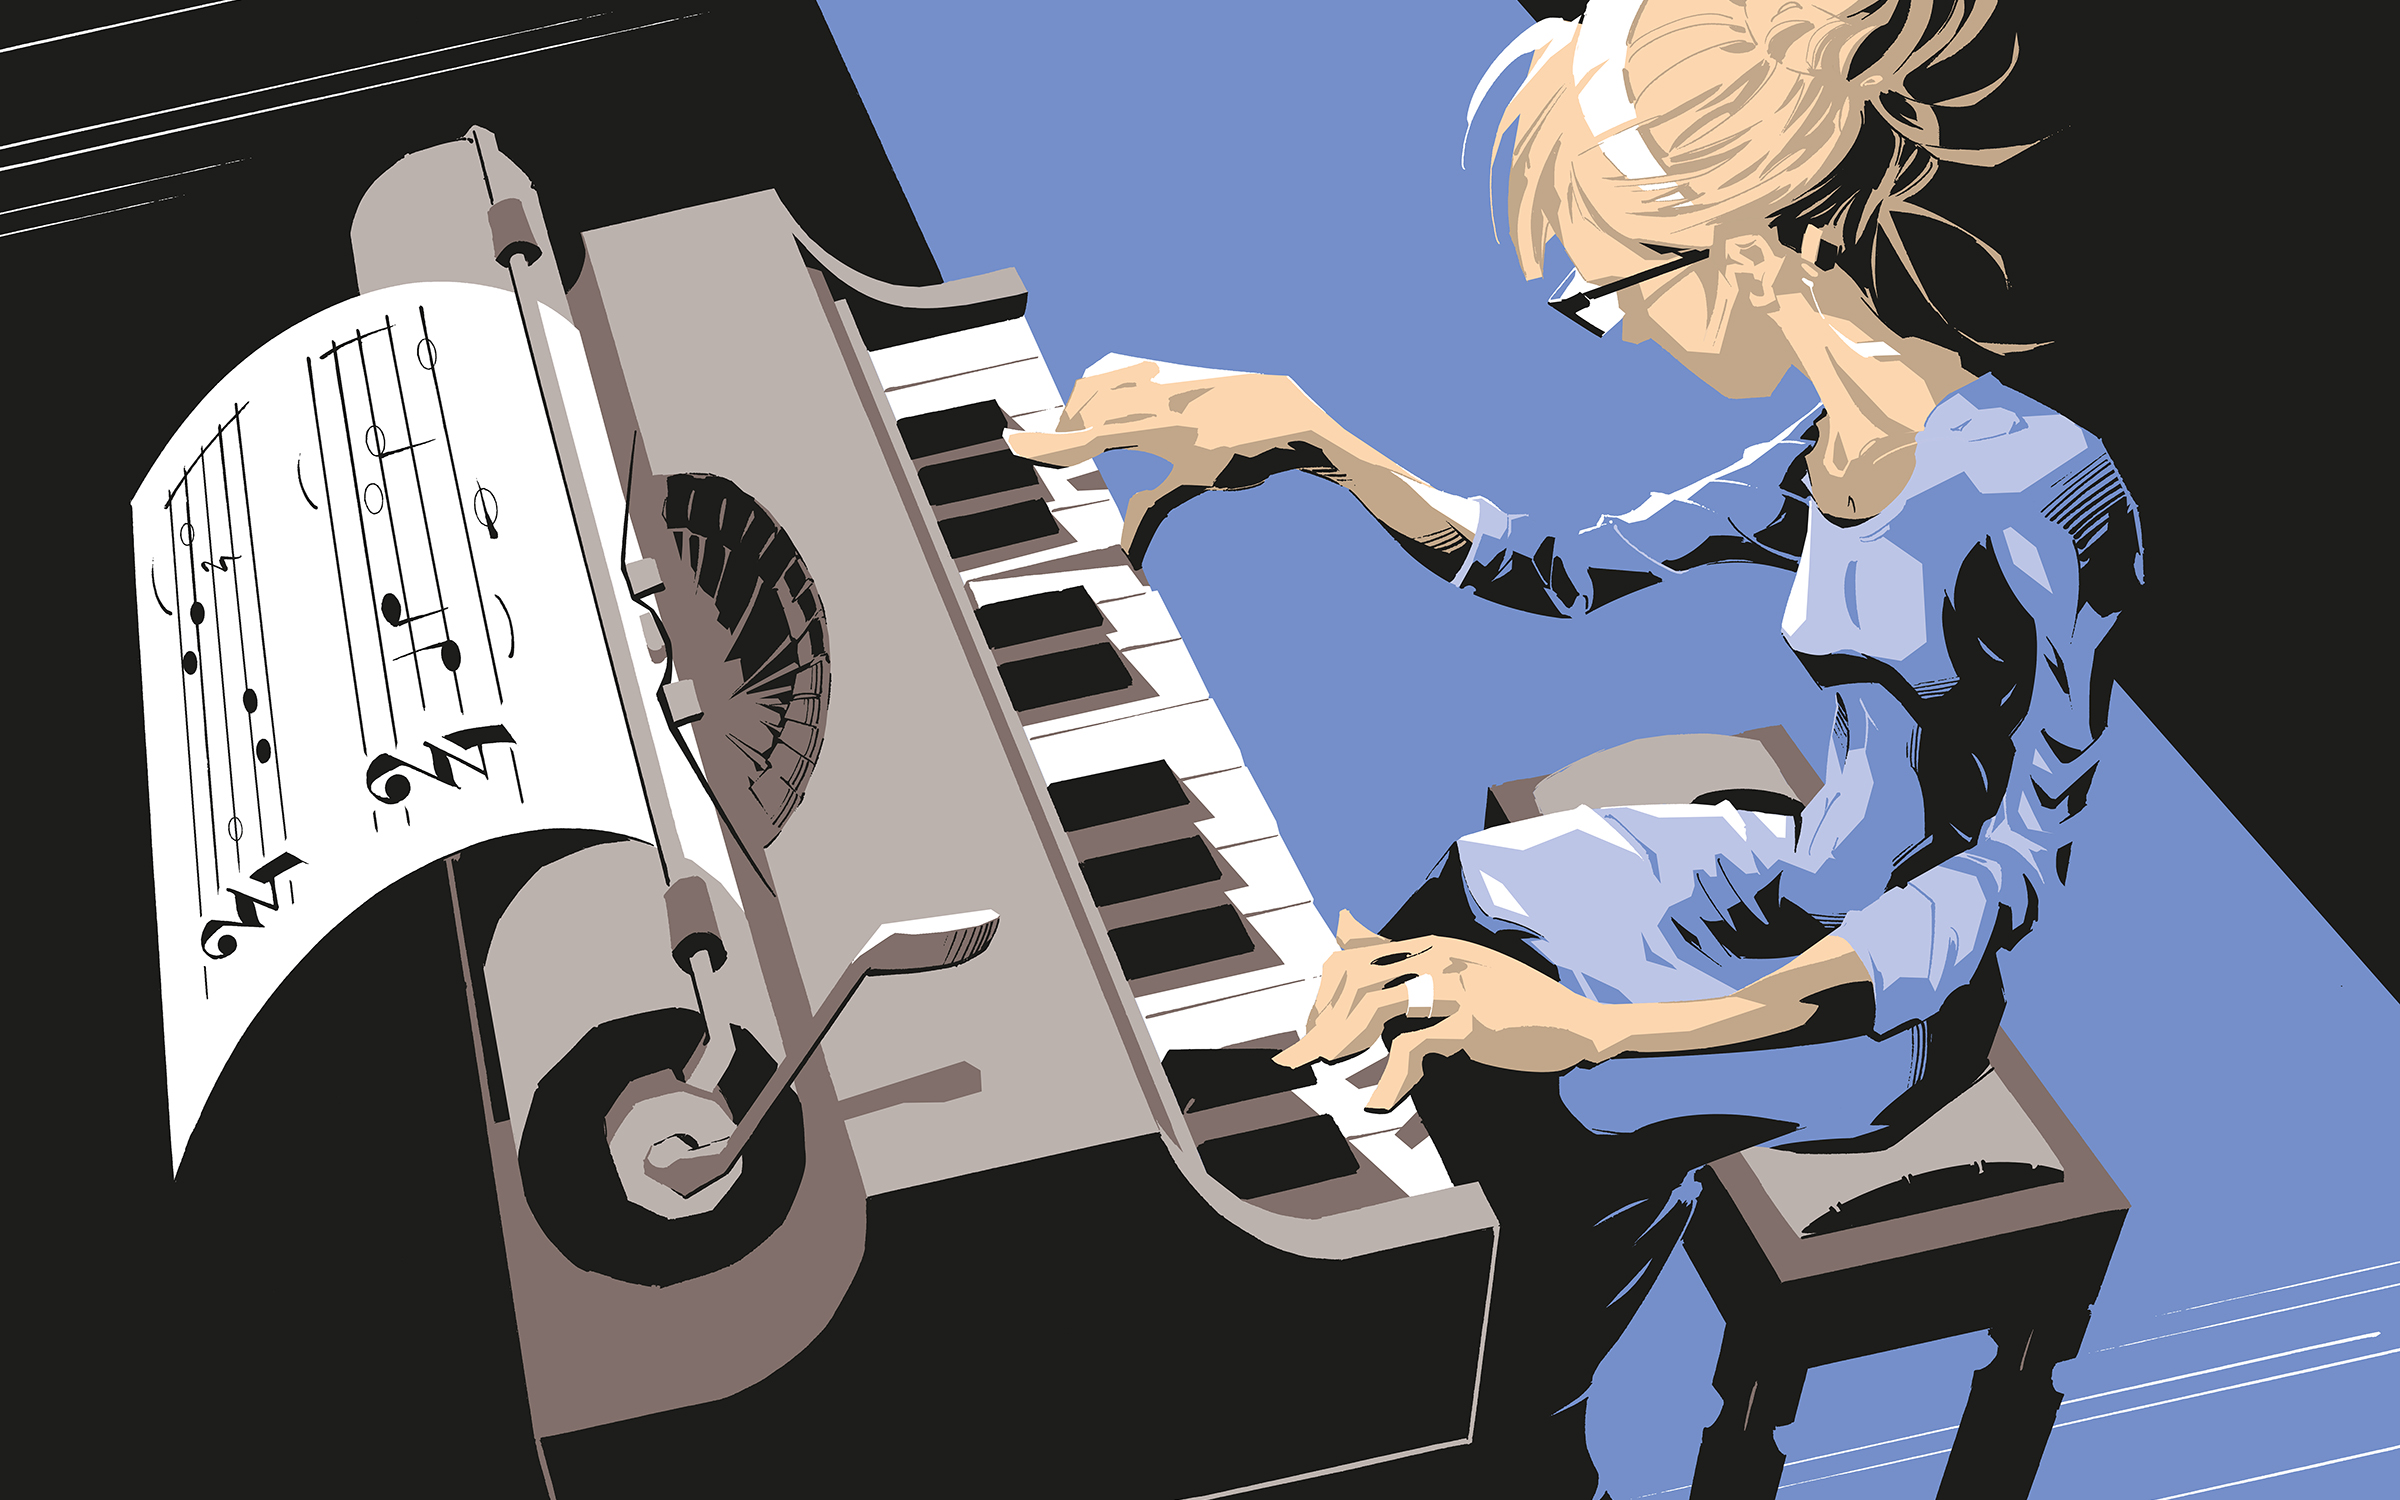 Illustration of woman composing sheet music on a piano amalgamated with a typewriter.